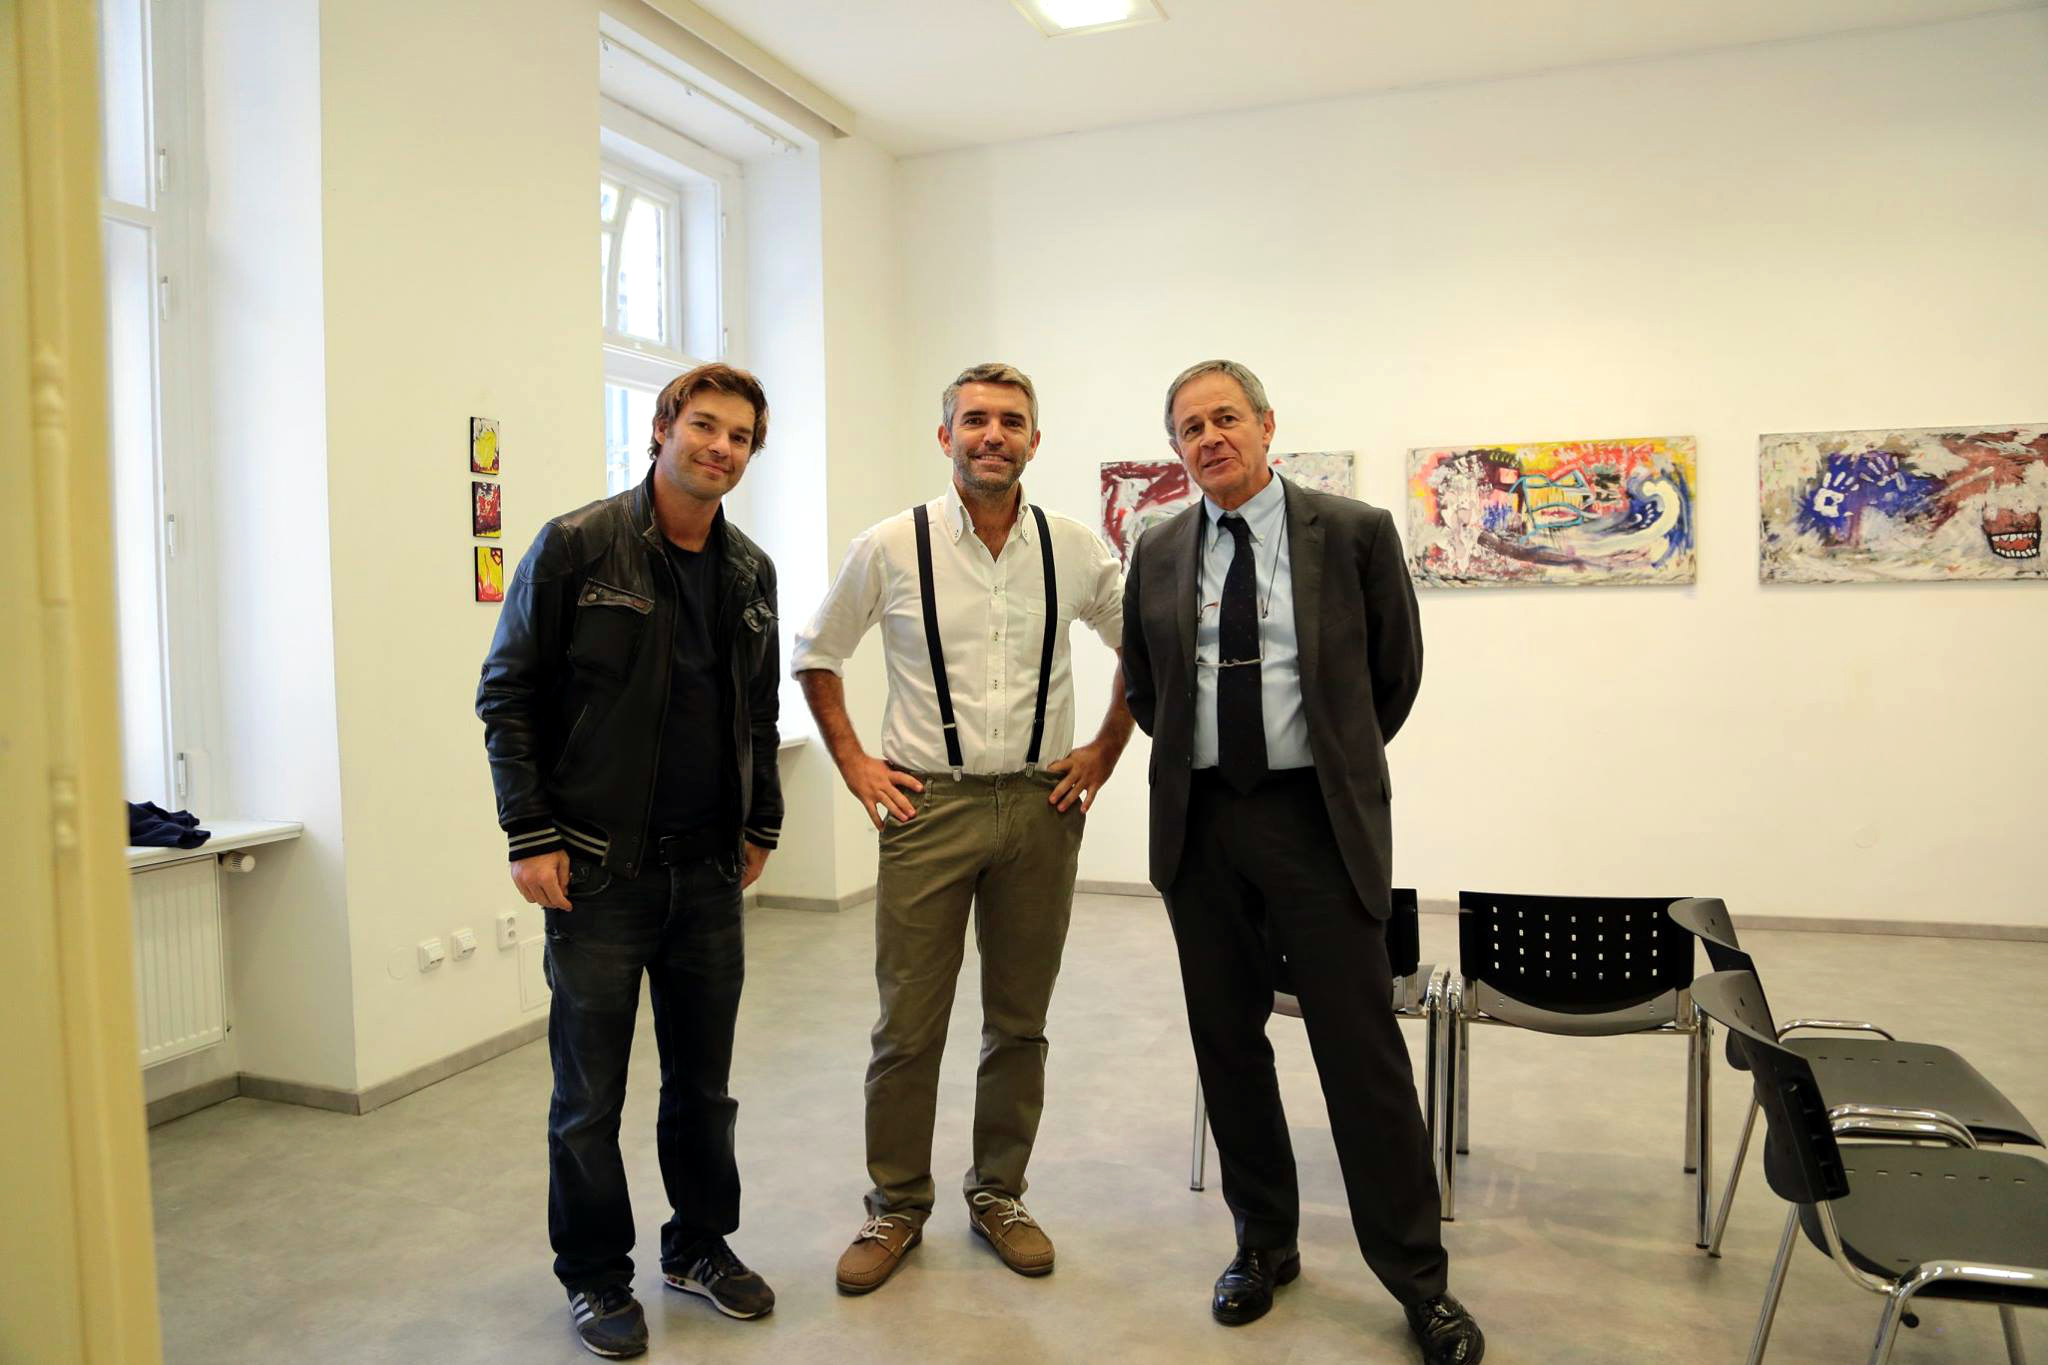 Hyperexpressionism in Prague – Topičův salon - Iacopo Maria Fiorani, David Miliozzi and Giovanni Sciola